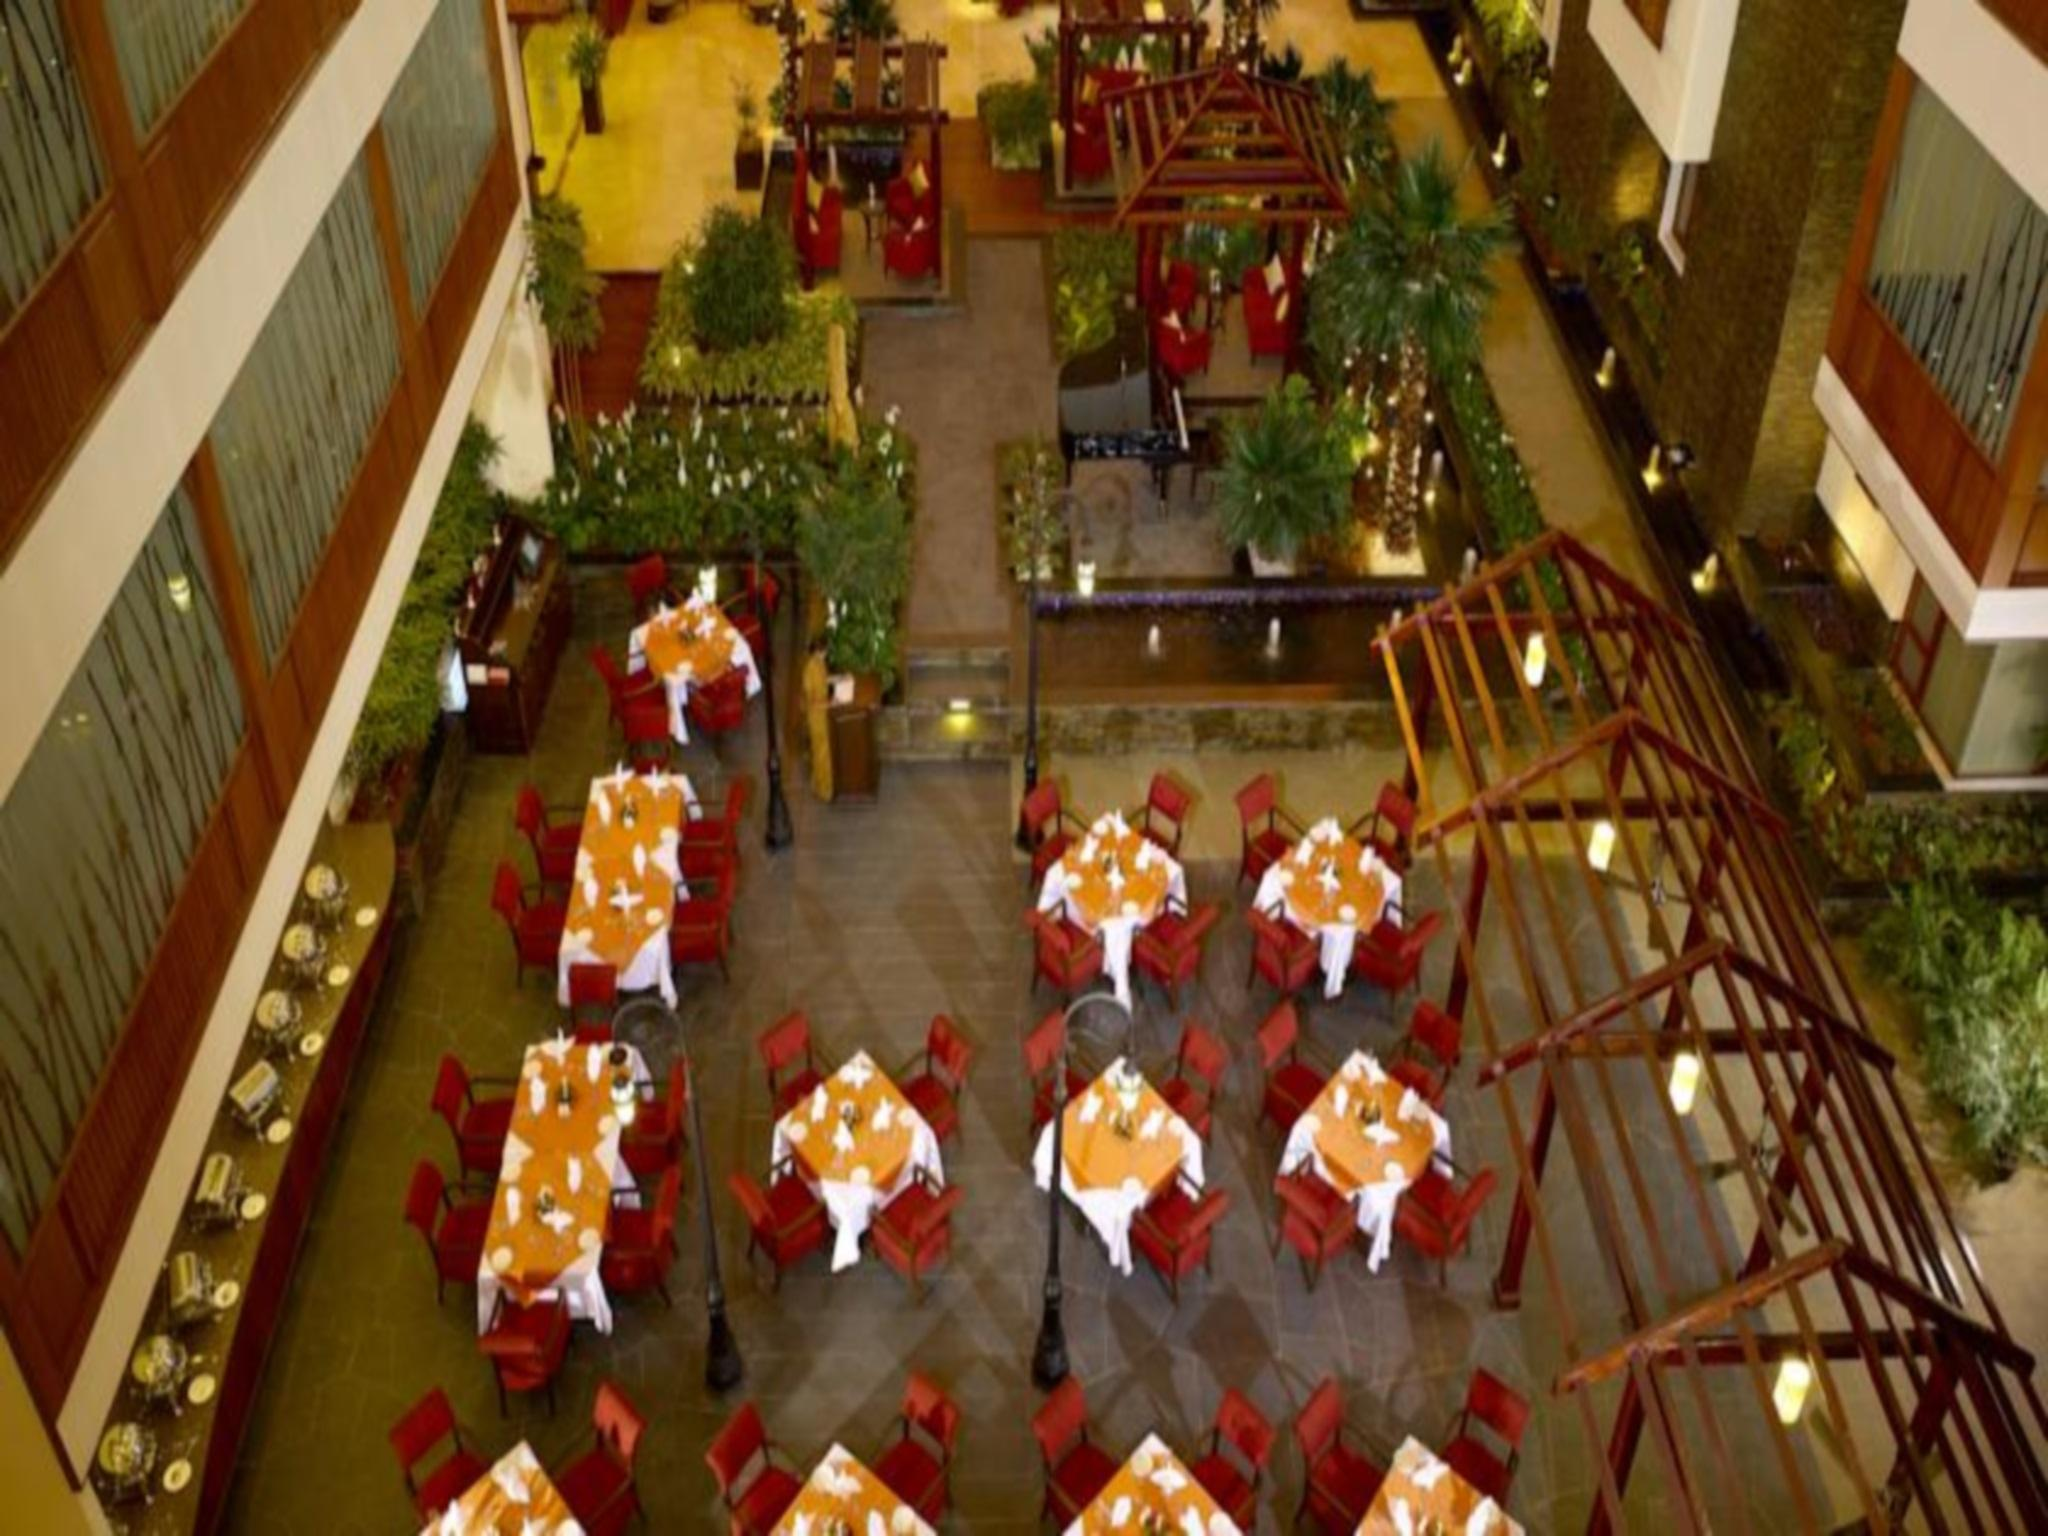 The Paul Bangalore Hotel